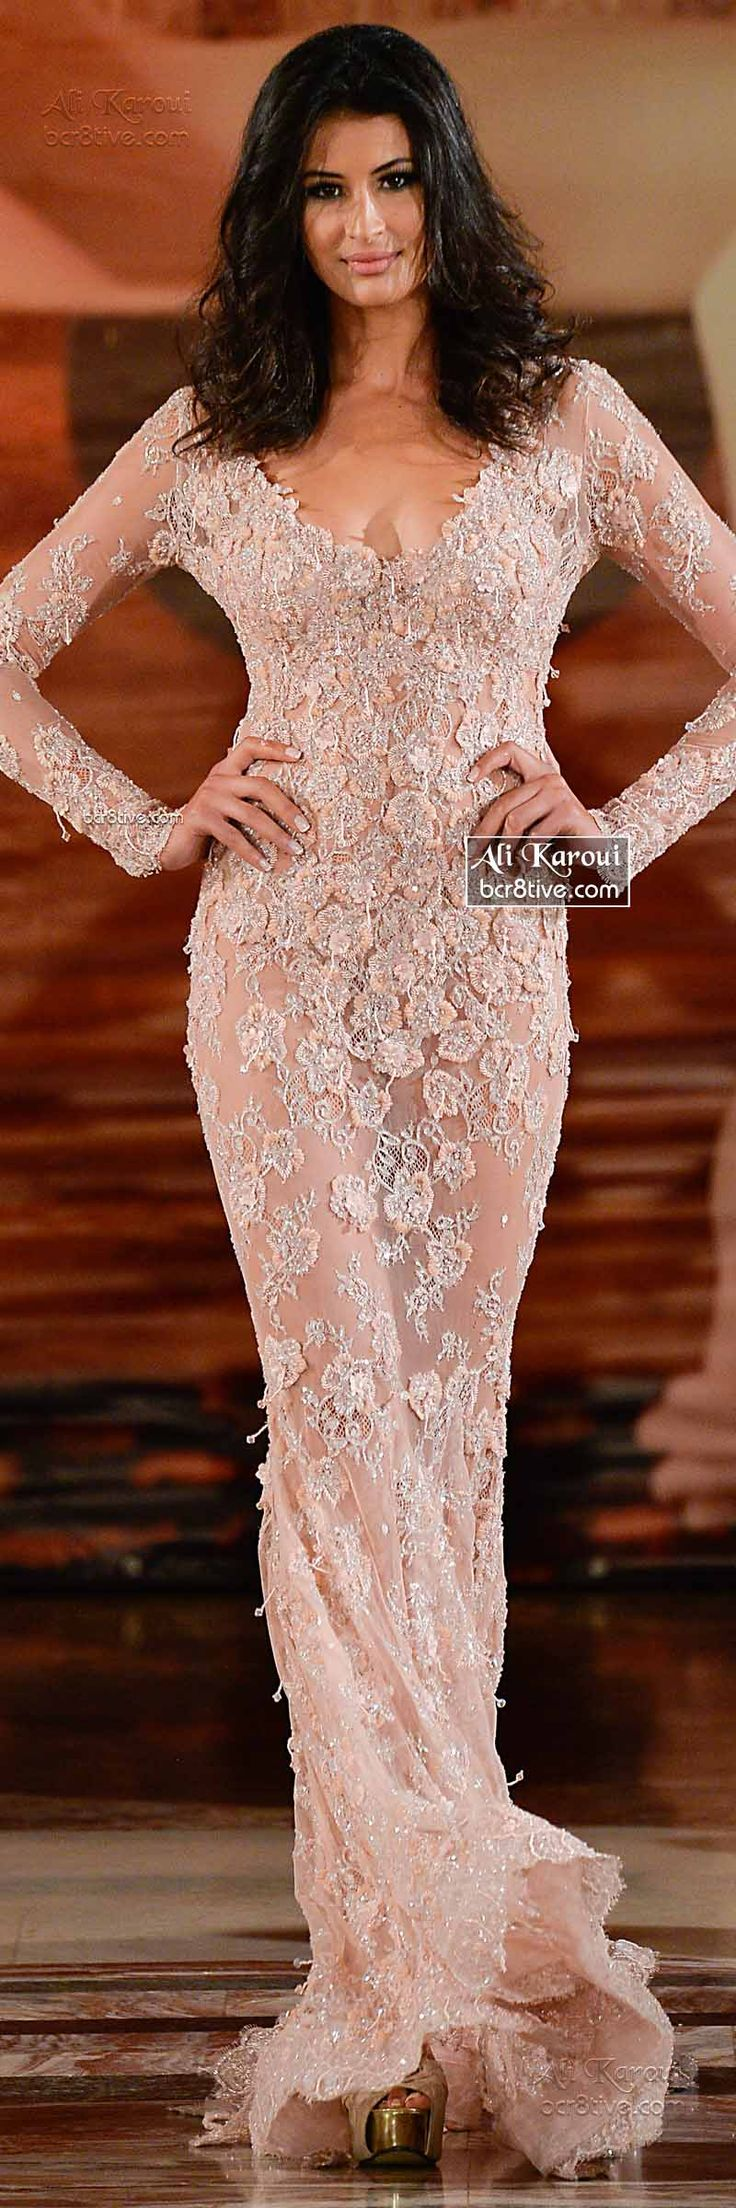 11 best Karoui Ali images on Pinterest | Couture collection, High ...